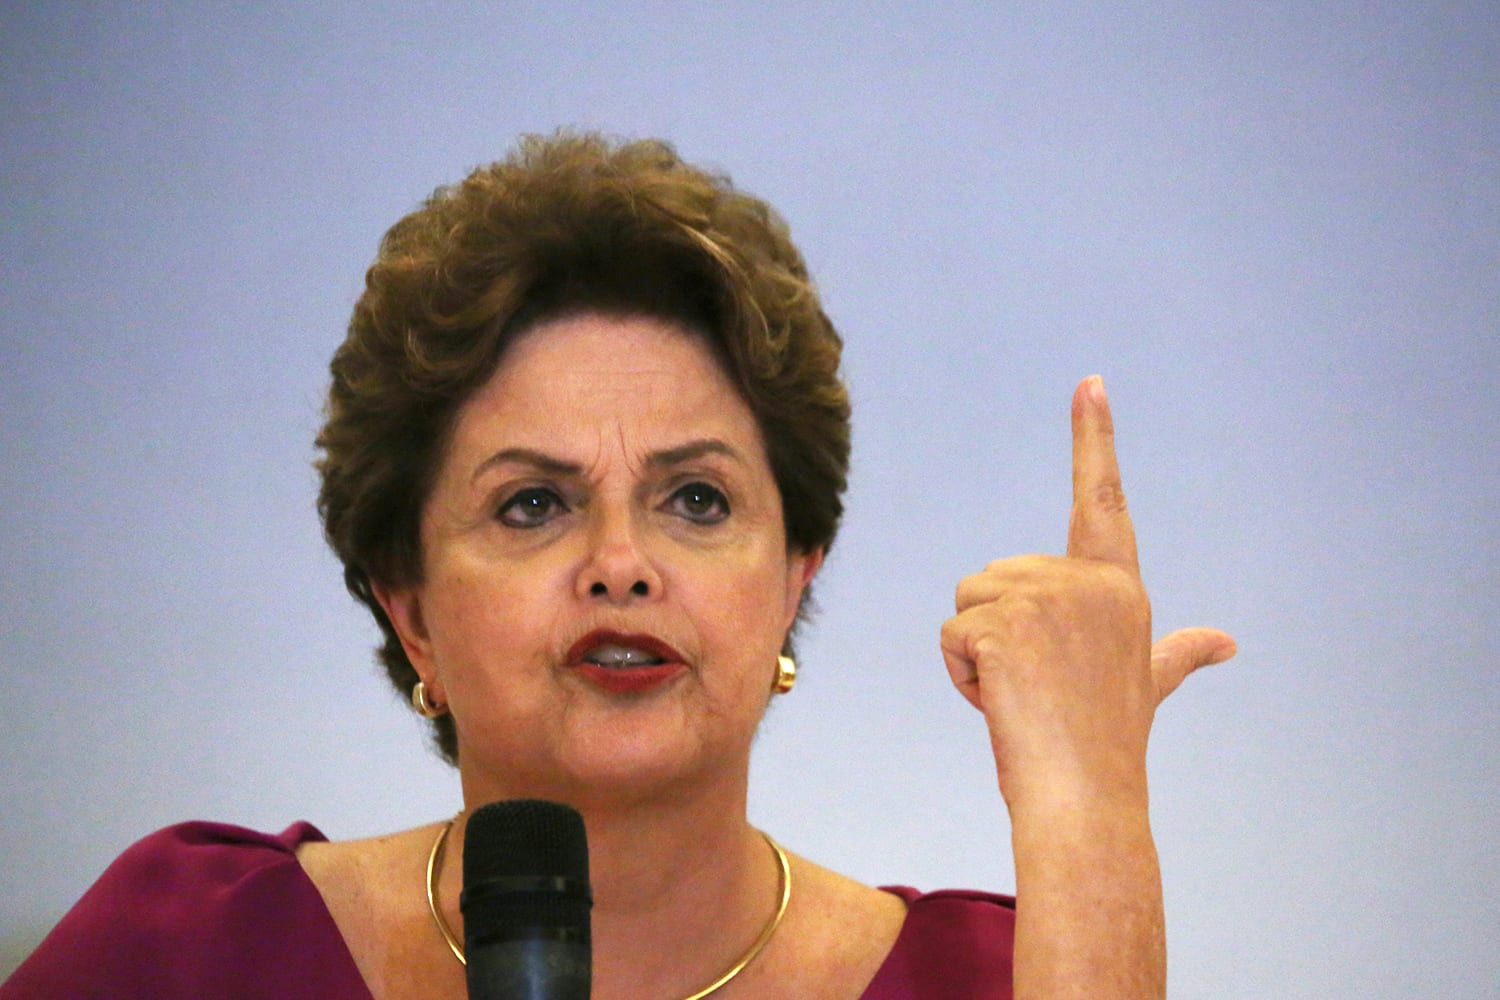 Former Brazilian President Dilma Rousseff speaks during a news conference in Rio de Janeiro, Brazil March 26, 2018. REUTERS/Pilar Olivares